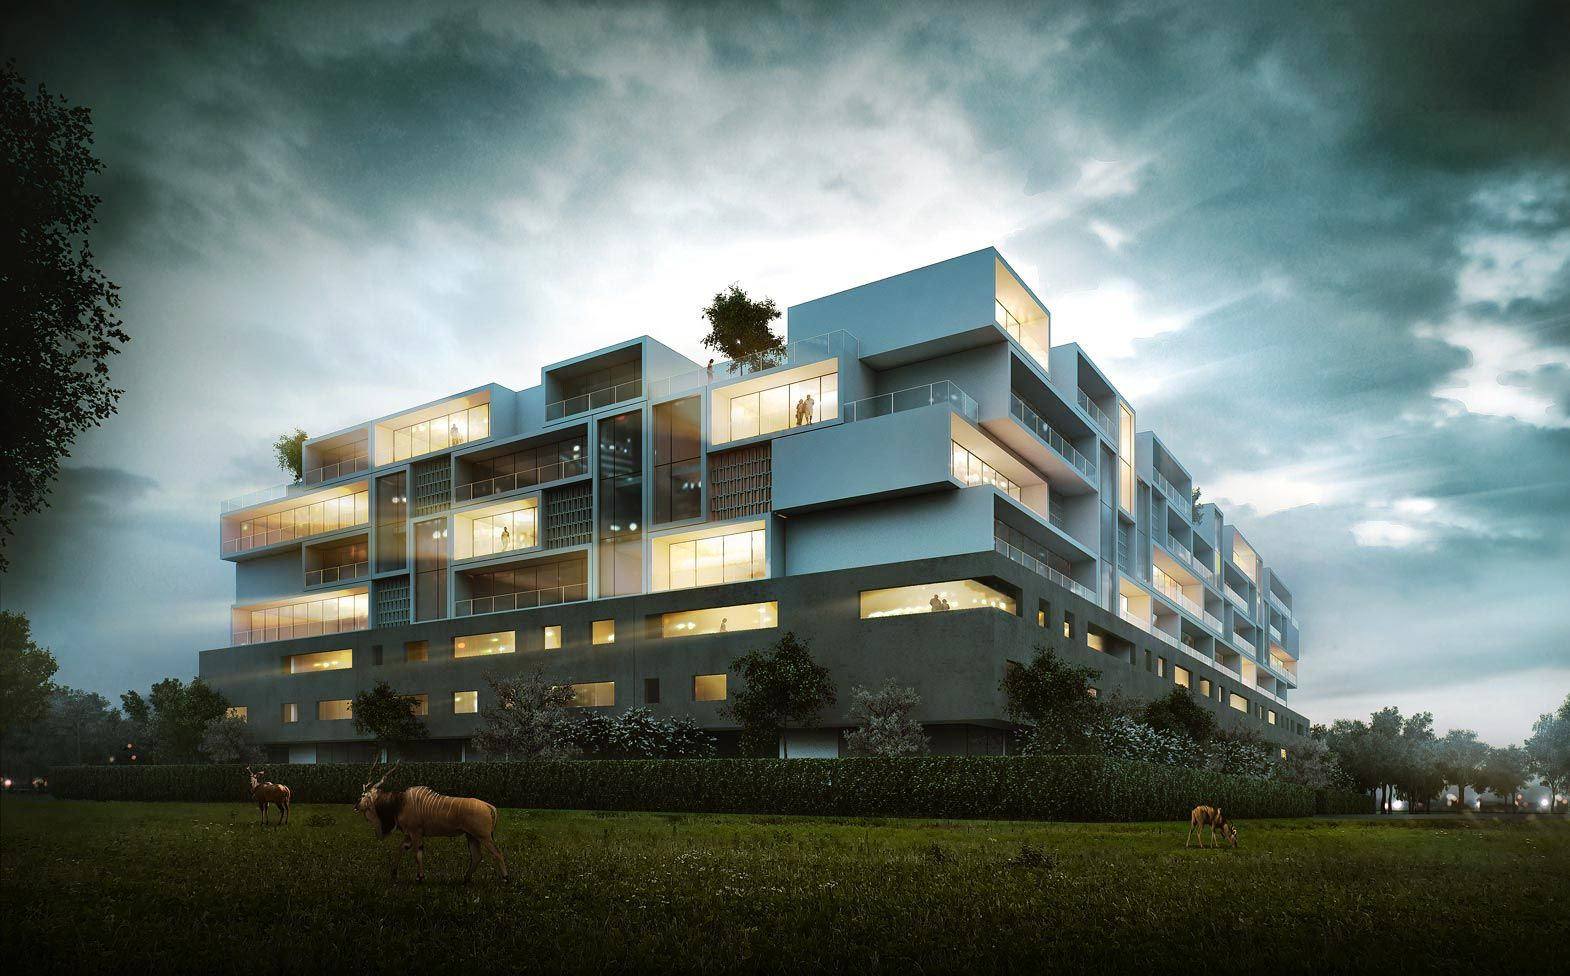 Sergio mereces nice 3d render project for the client Domaine architecture